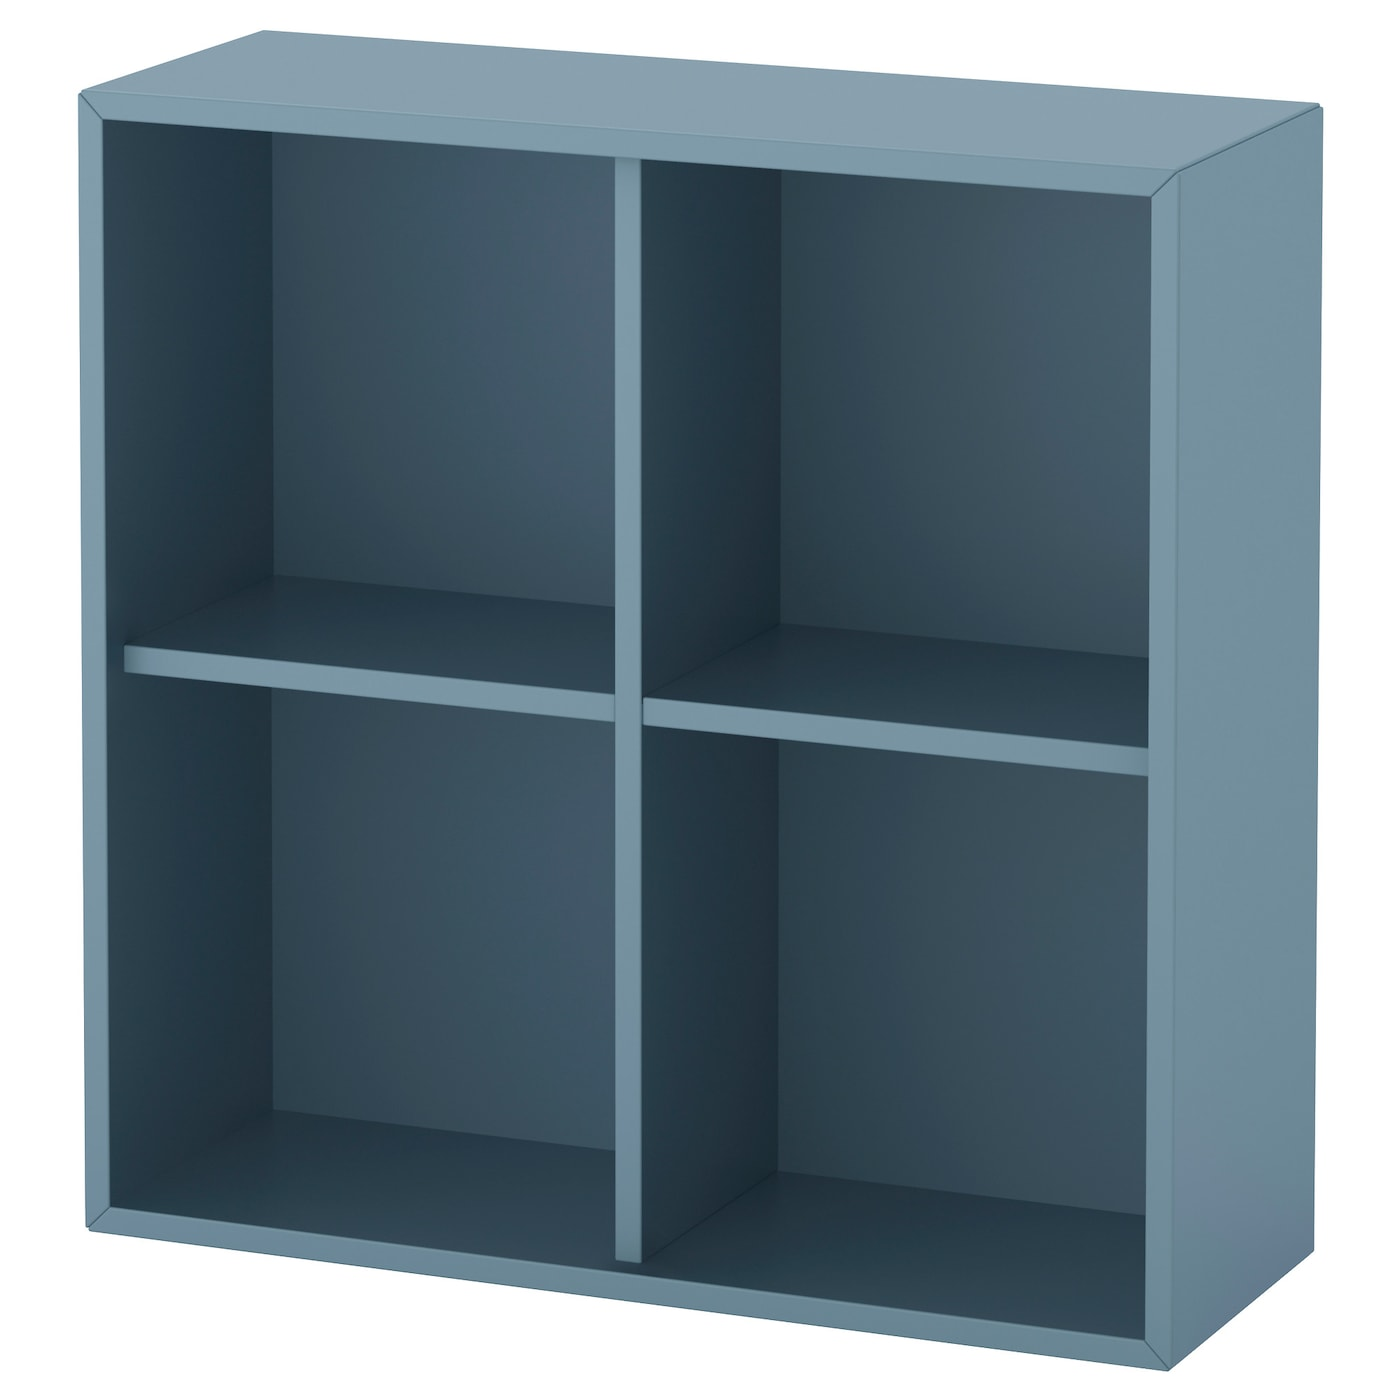 eket cabinet with 4 compartments light blue 70x25x70 cm ikea. Black Bedroom Furniture Sets. Home Design Ideas